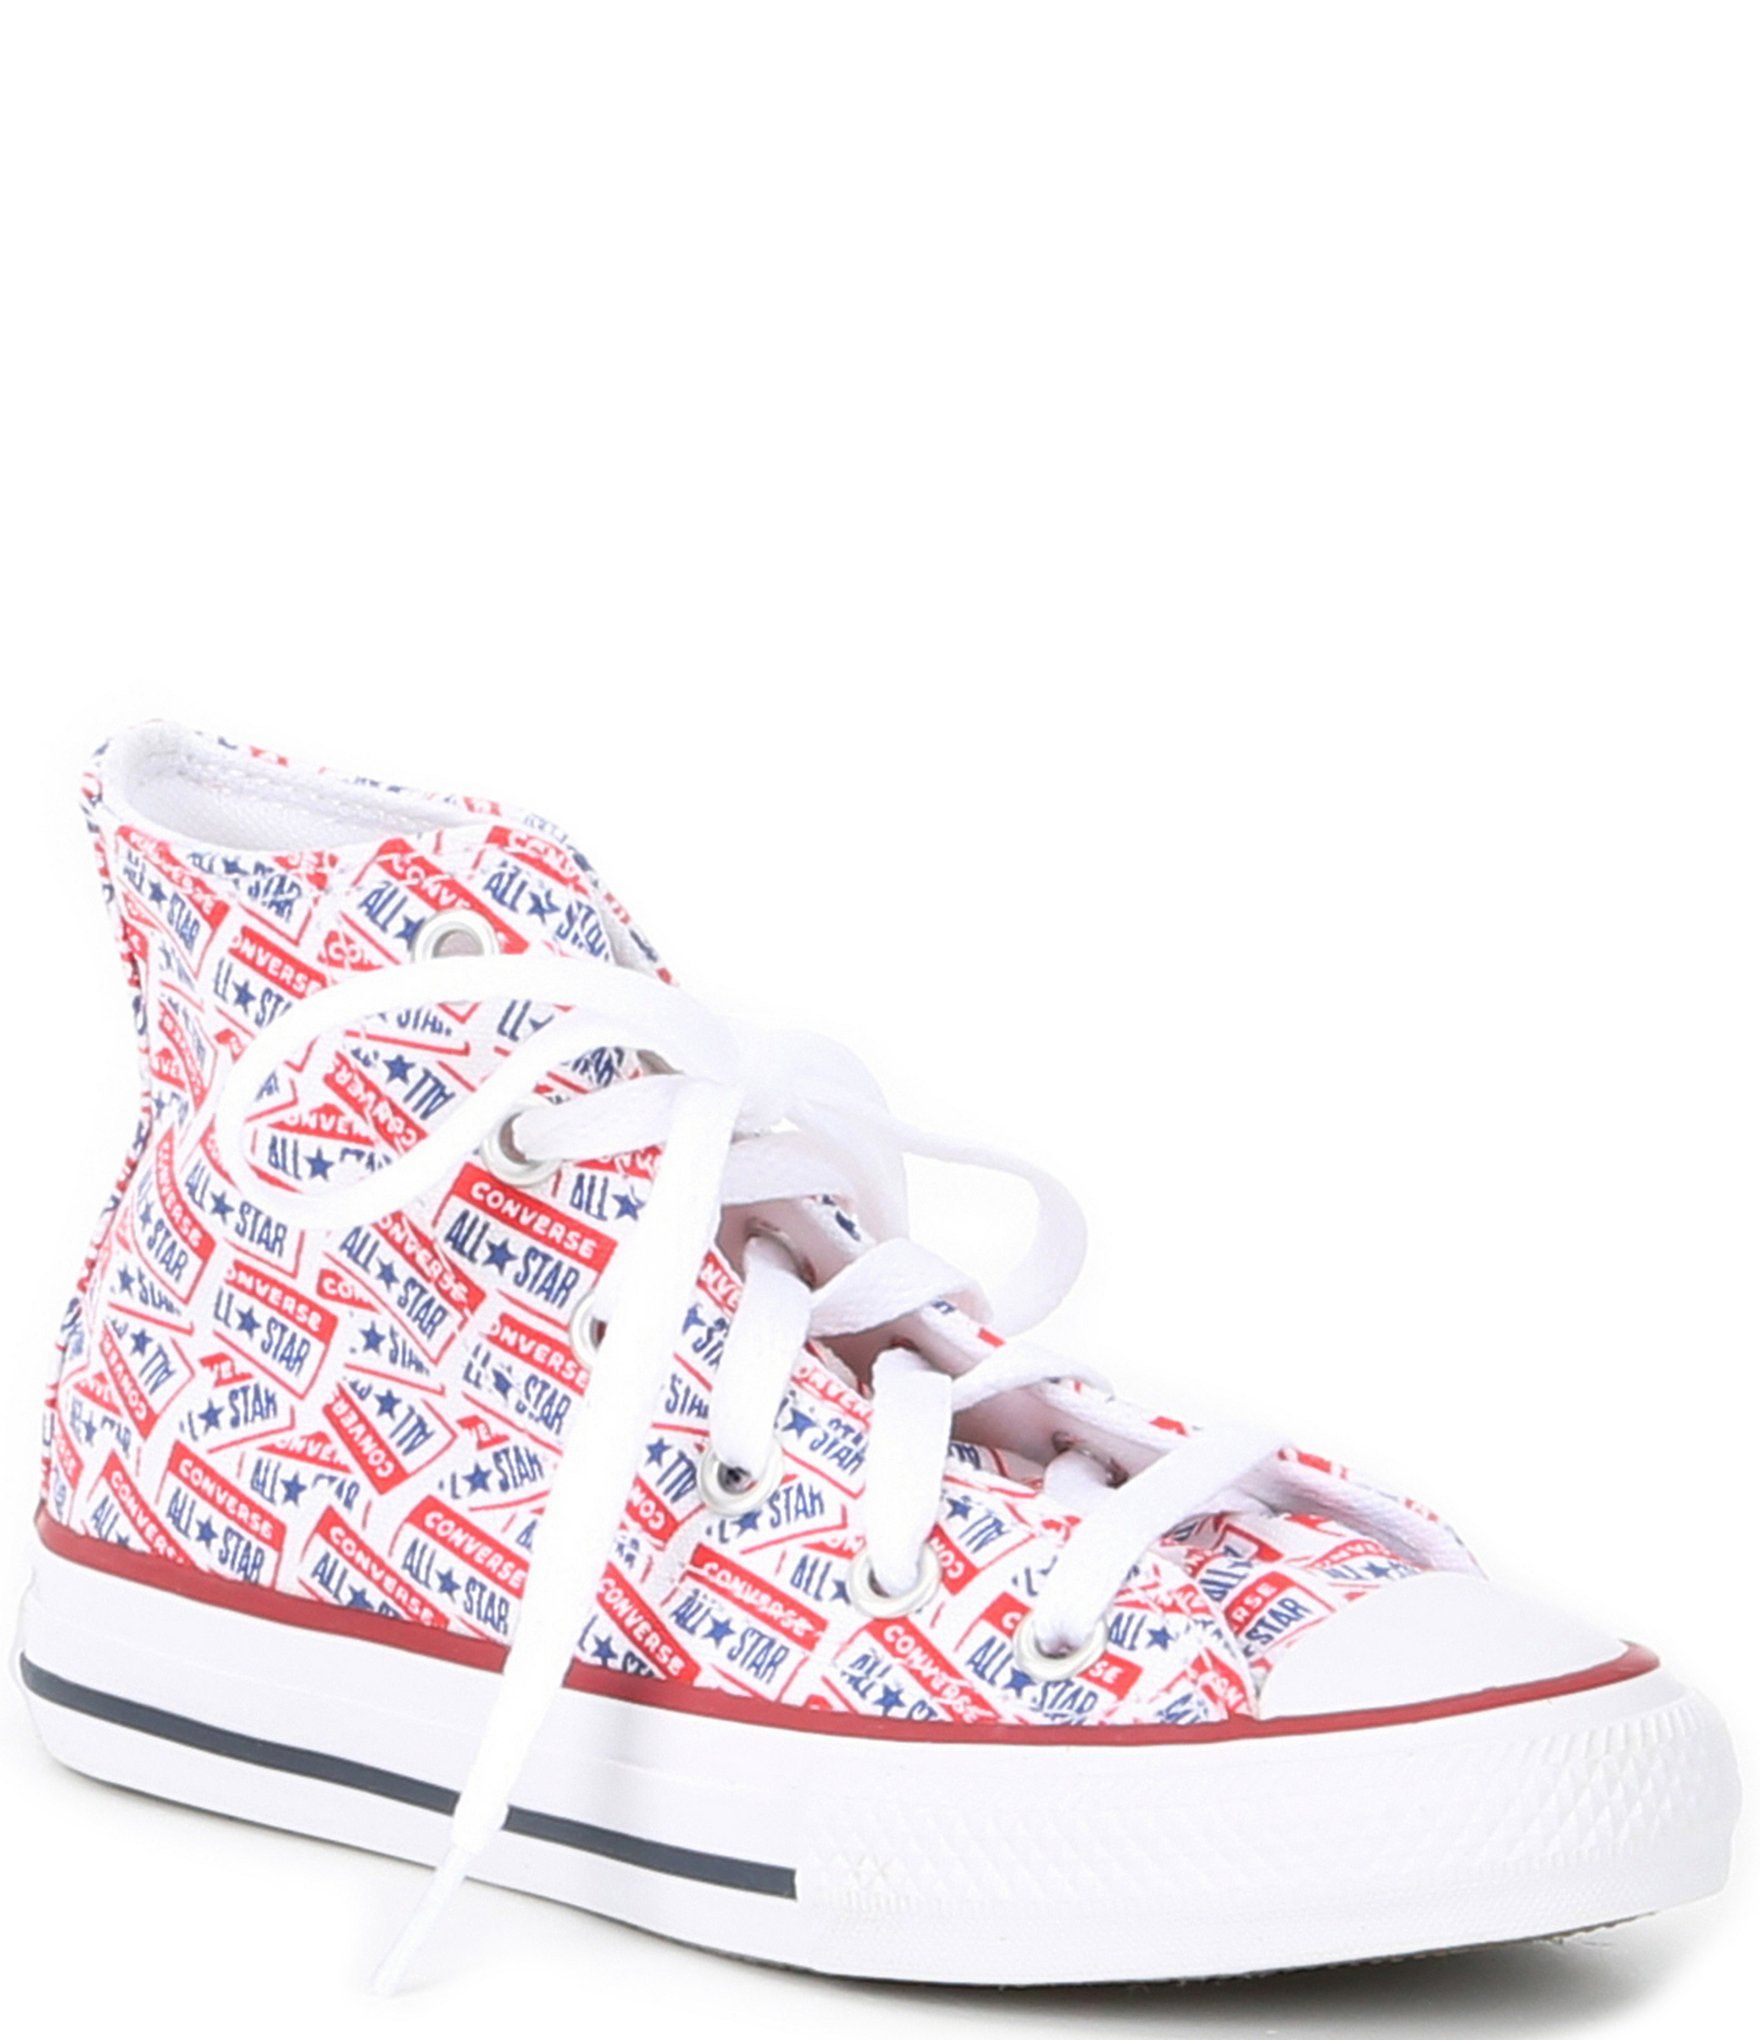 Converse Kids' Chuck Taylor All Star License Plate High Top Sneakers Youth